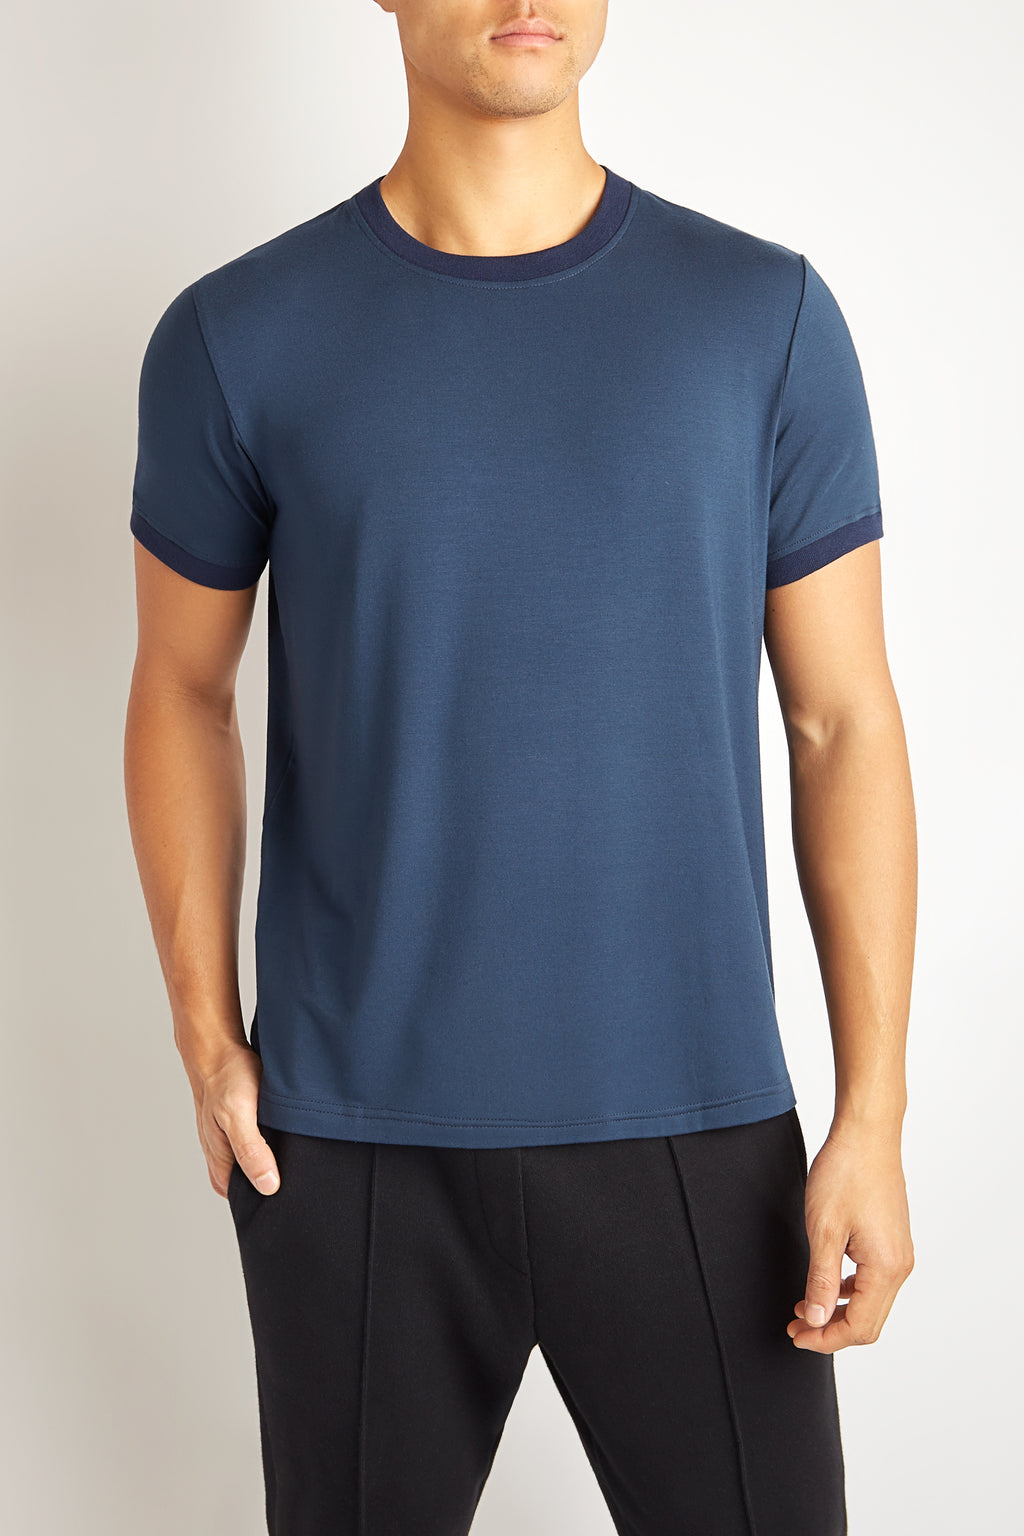 CONTRAST MIDNIGHT BLUE JERSEY